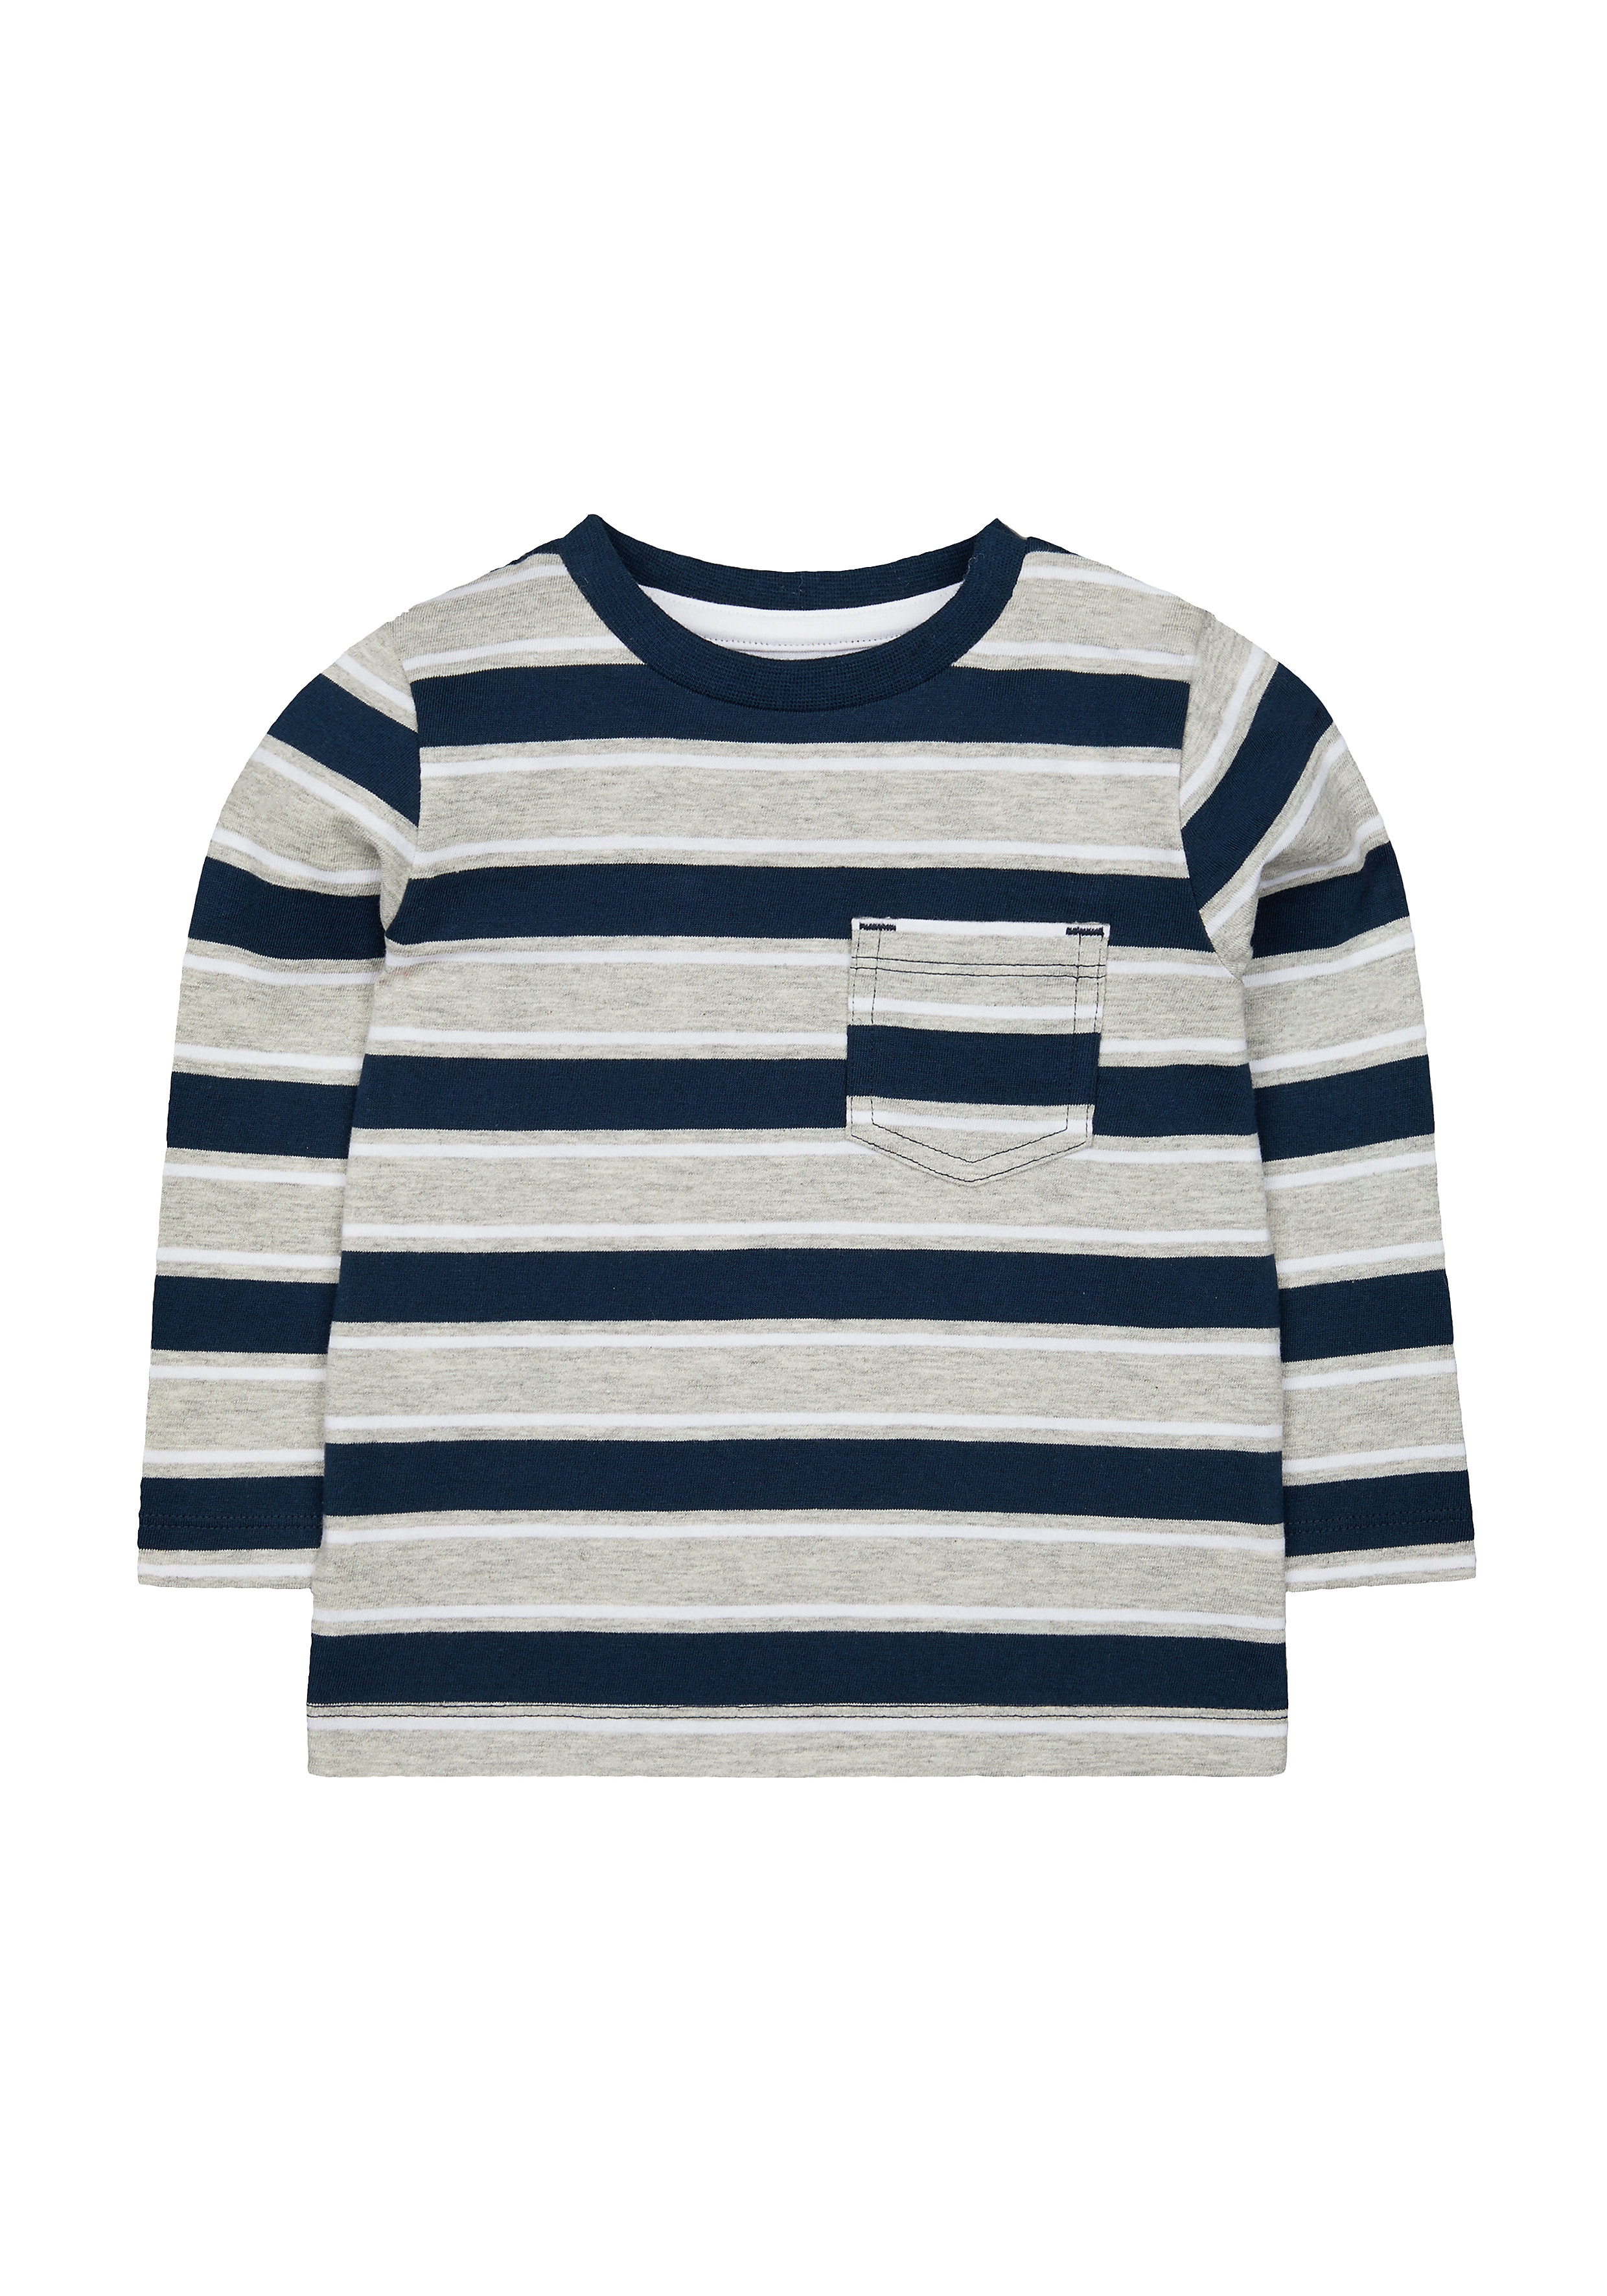 Mothercare | Boys Full Sleeves T-Shirt Striped - Multicolor